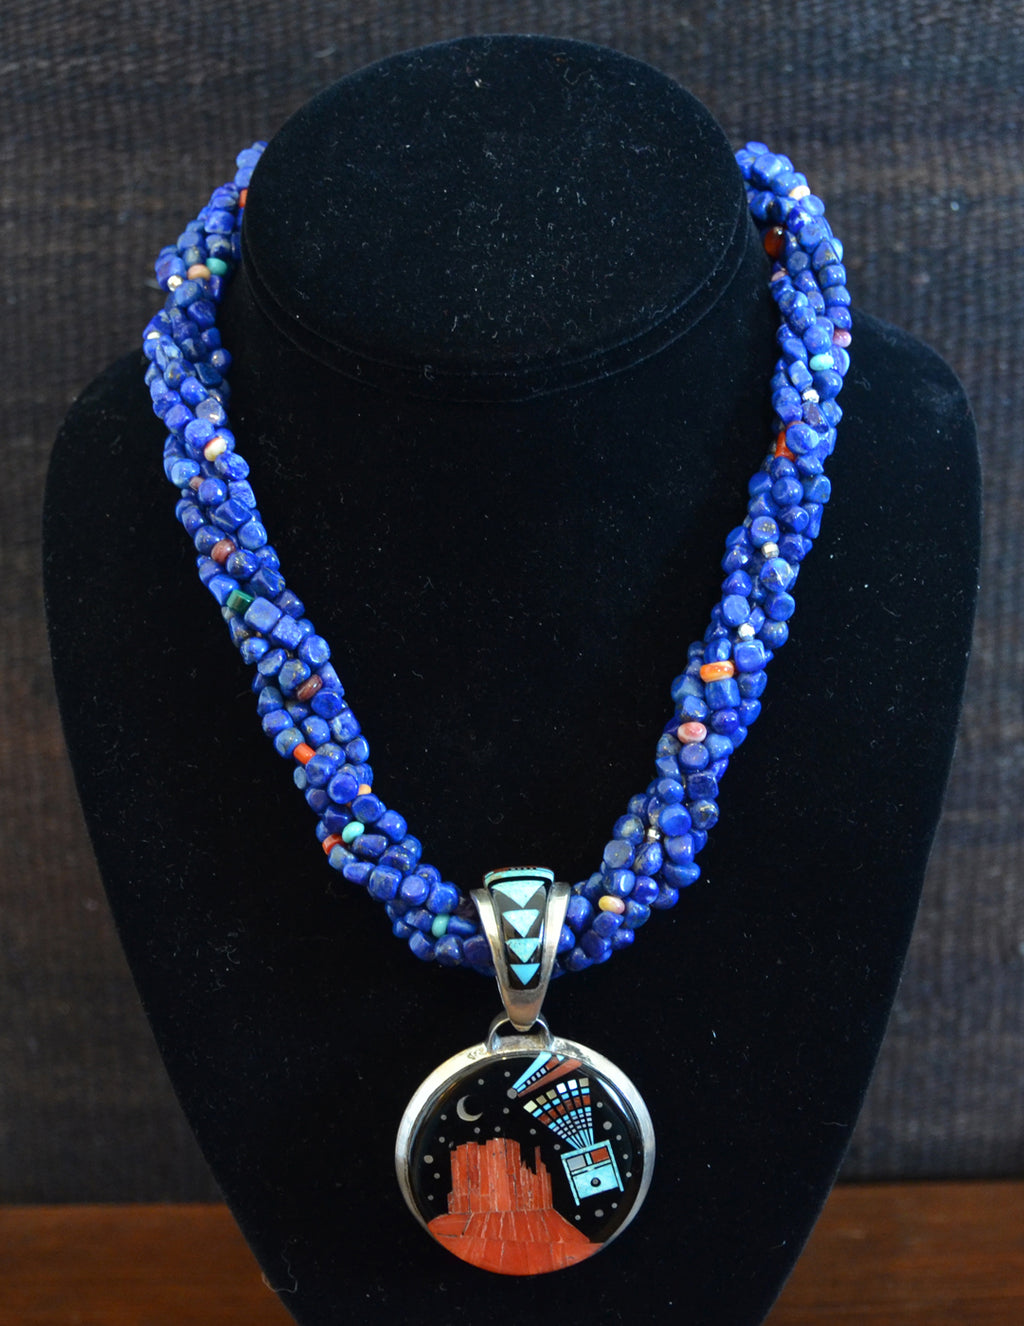 HOLD Native American Jewelry : Navajo : Necklace - Lapis beads, Night Sky Over Shiprock 2 sided pendant : Ervin P Tsosie : NAJ-N20 - Getzwiller's Nizhoni Ranch Gallery